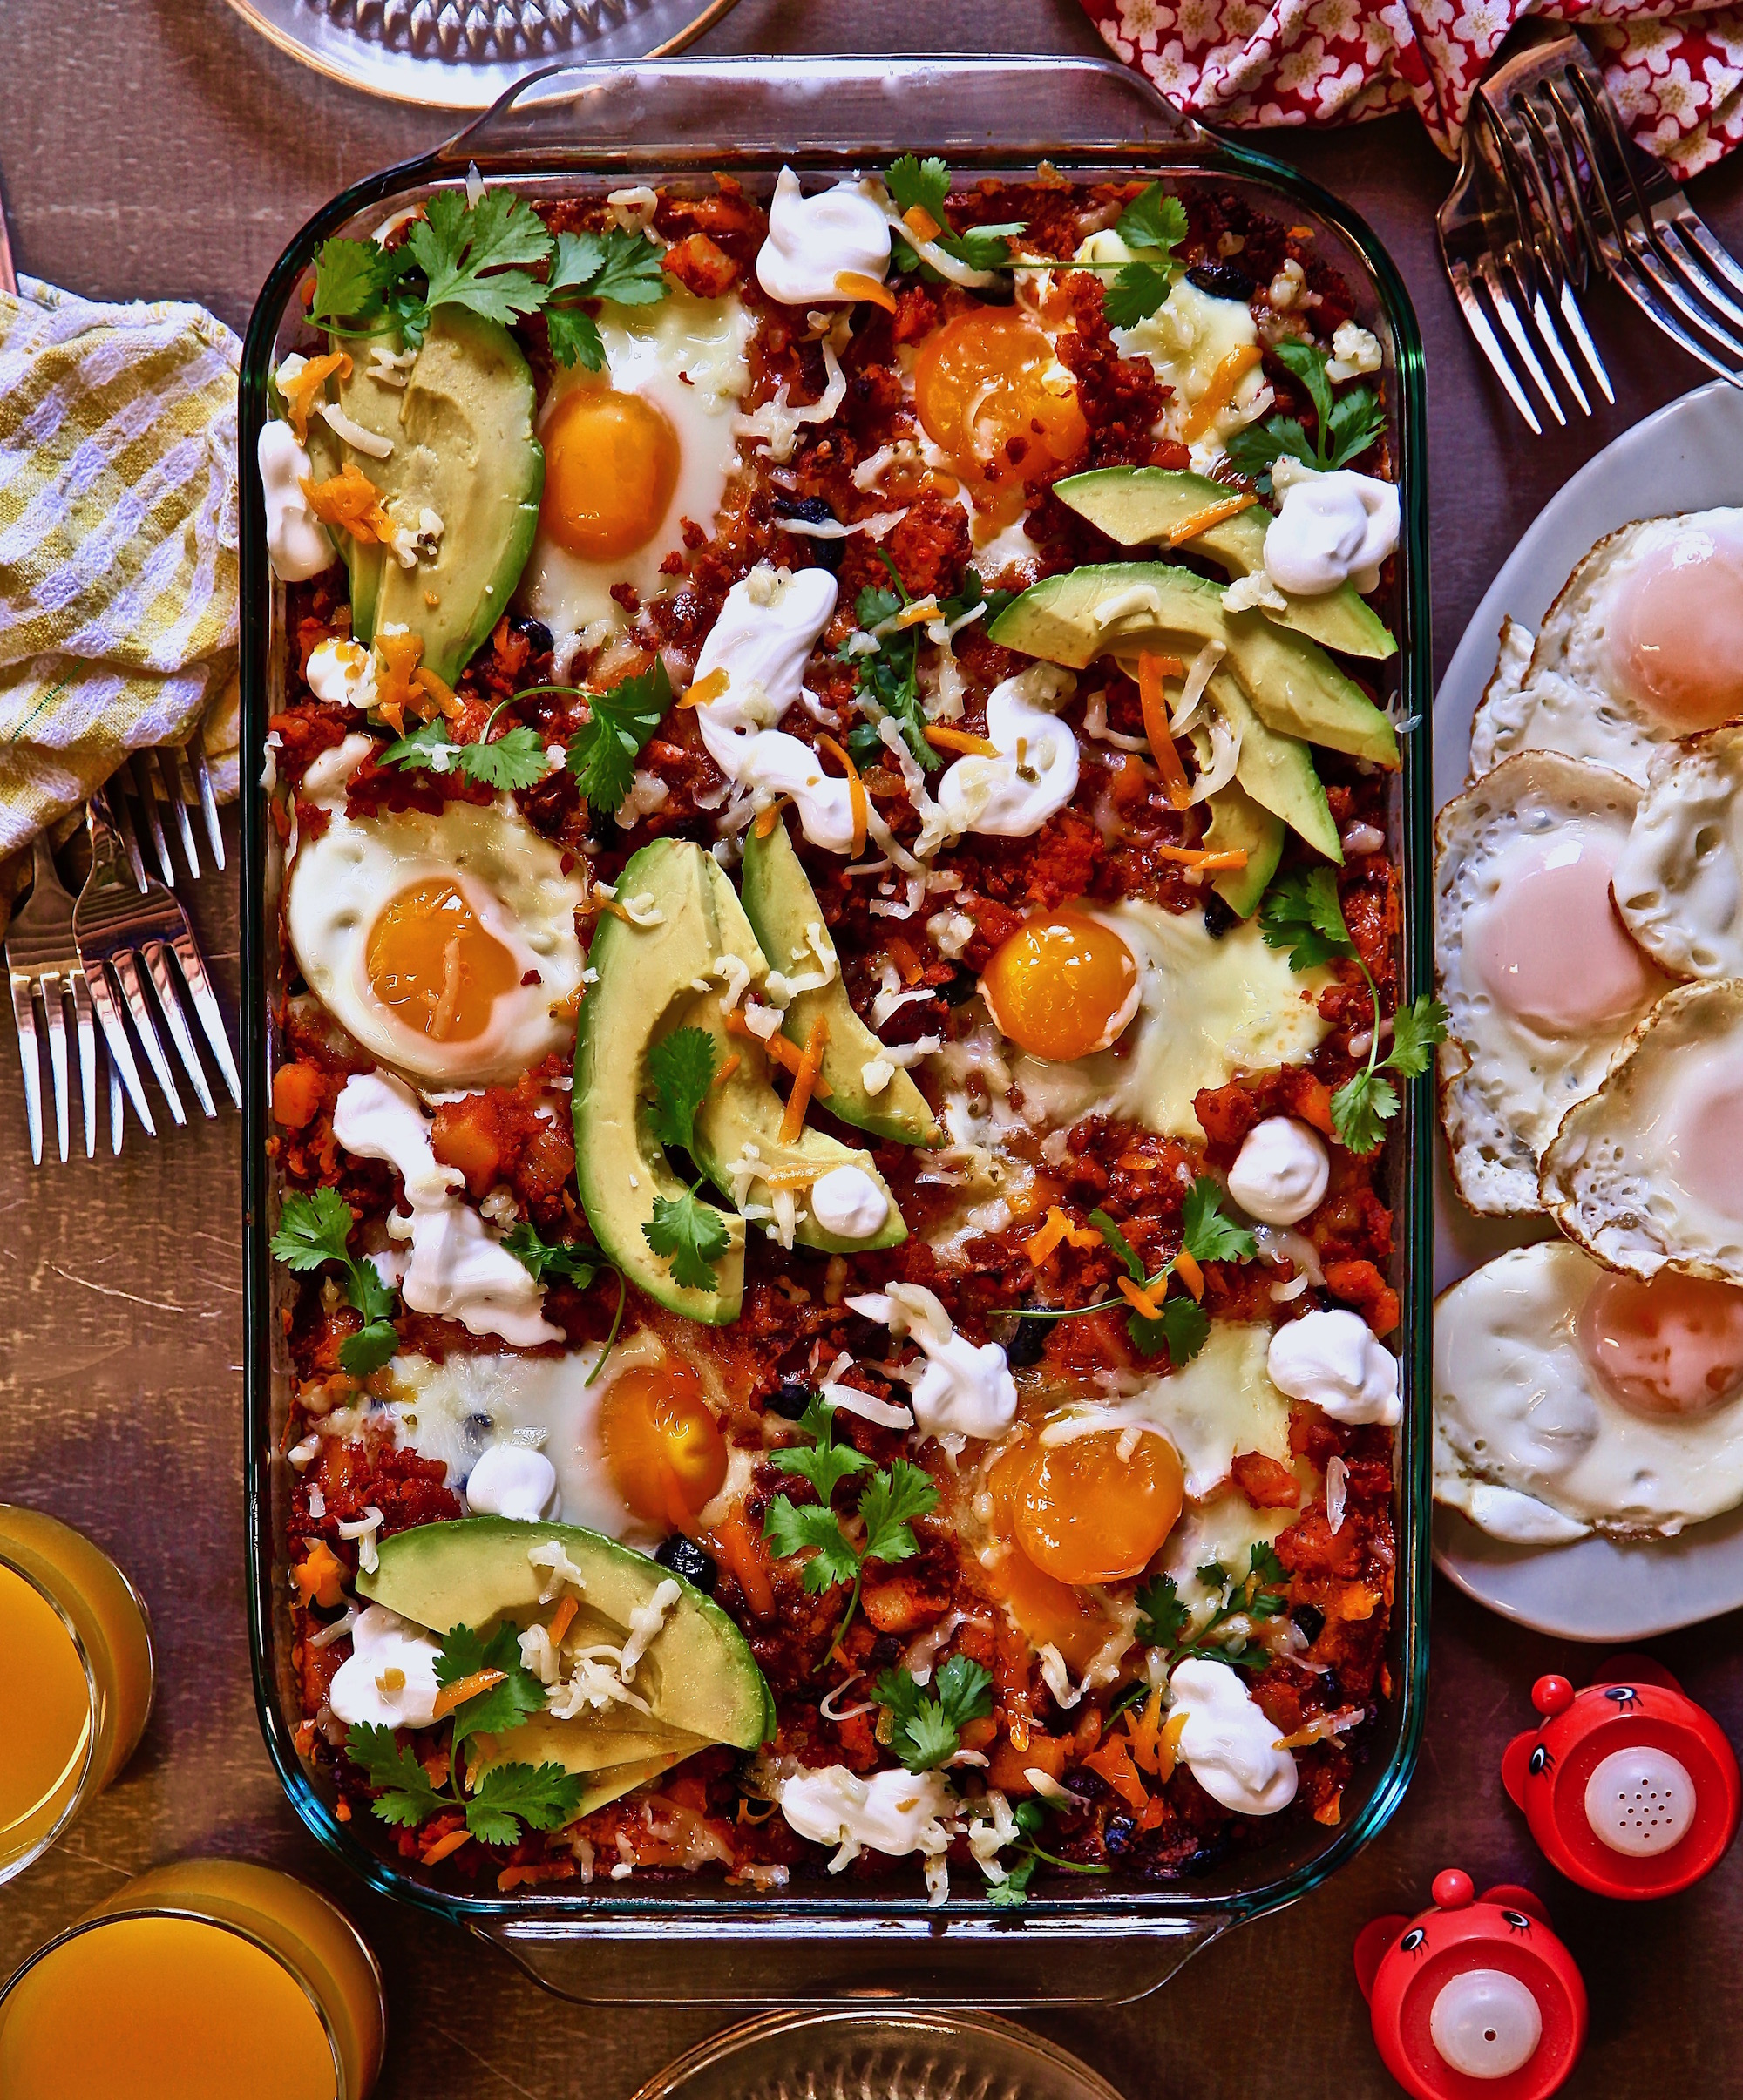 Breakfast enchiladas with eggs on top, all ingredients were bought at ALDI.